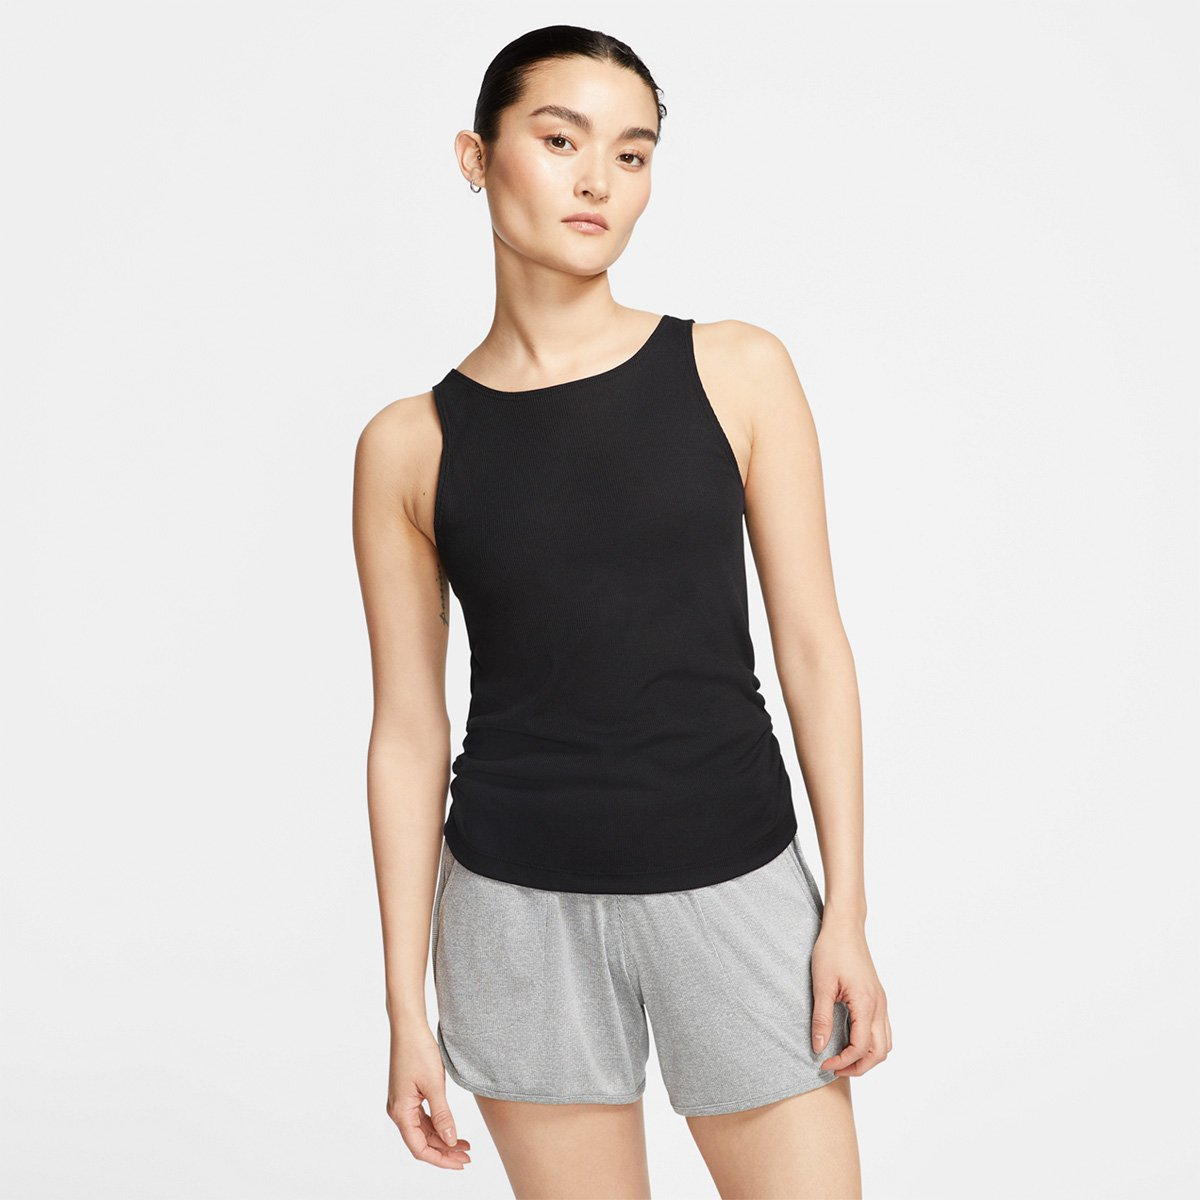 Regata Nike Yoga Ruched Feminina